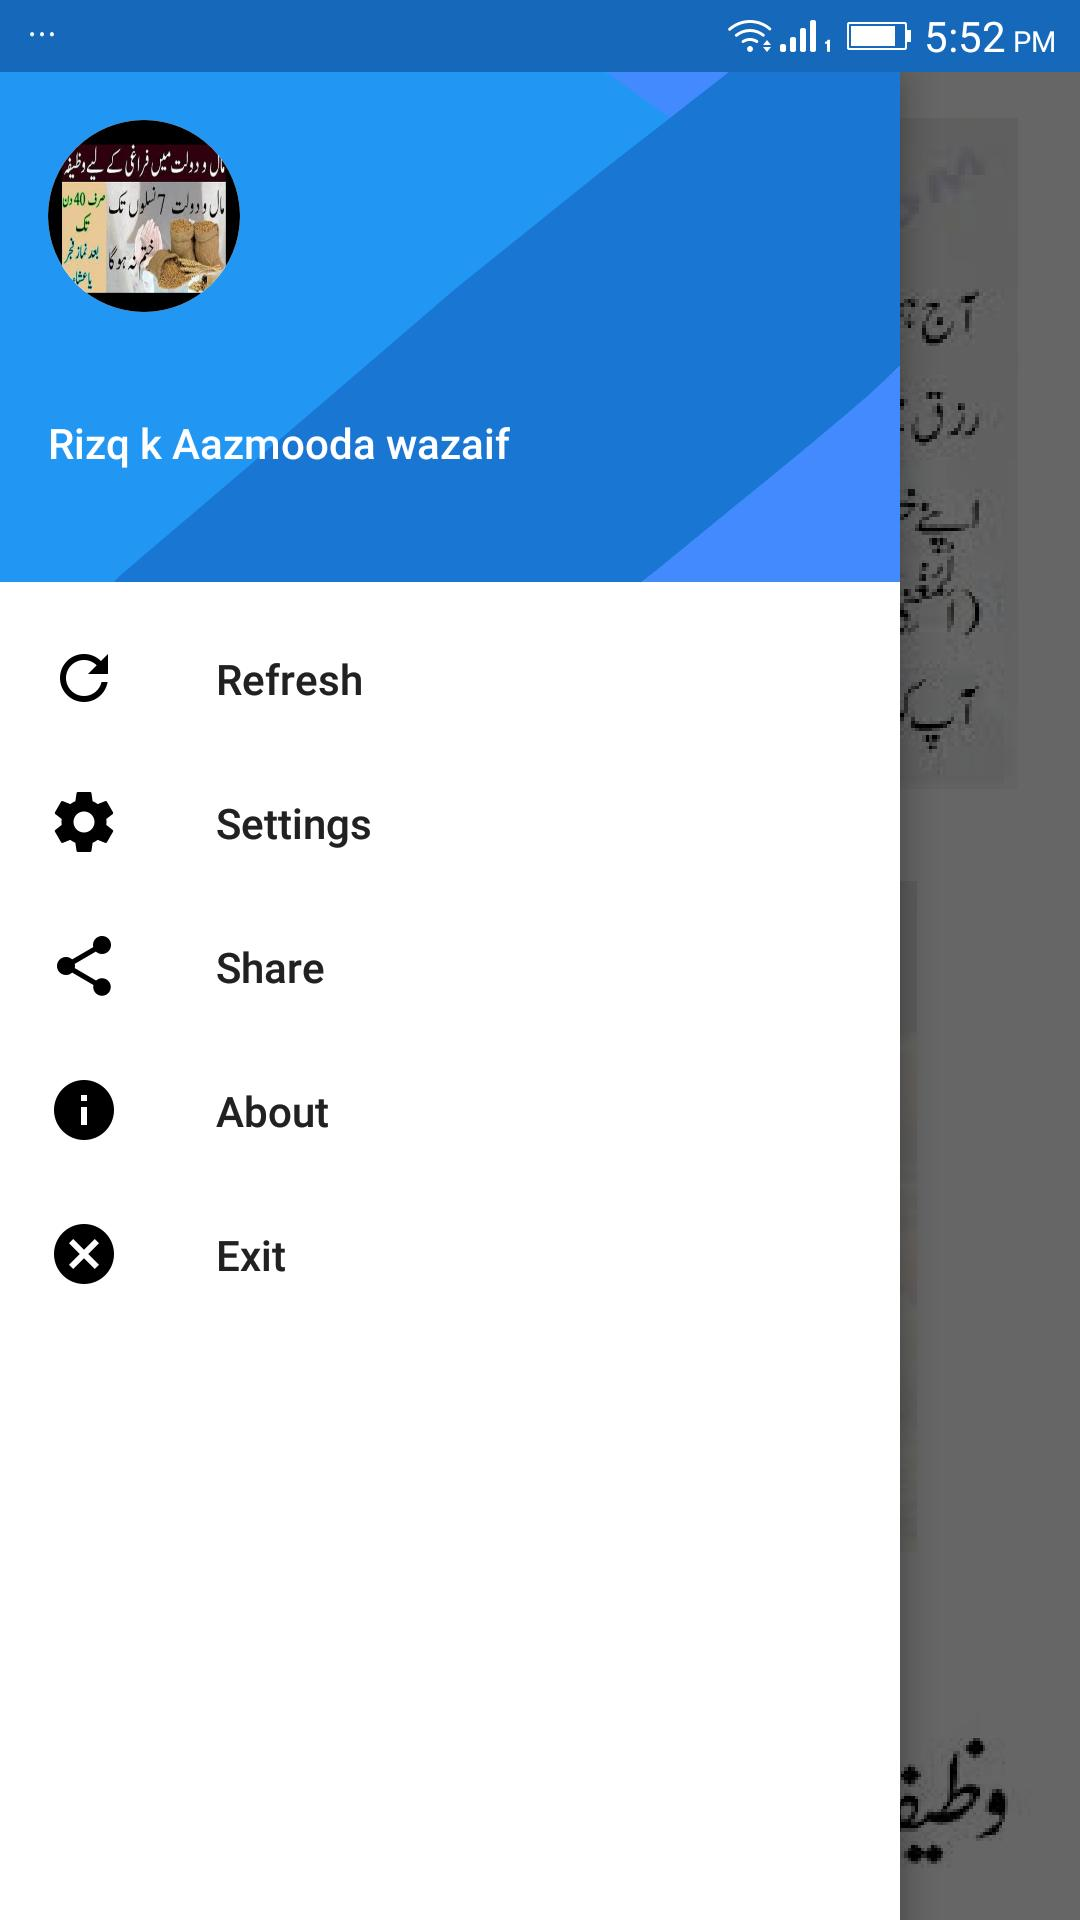 Rizq k wazaif mujarrab for Android - APK Download